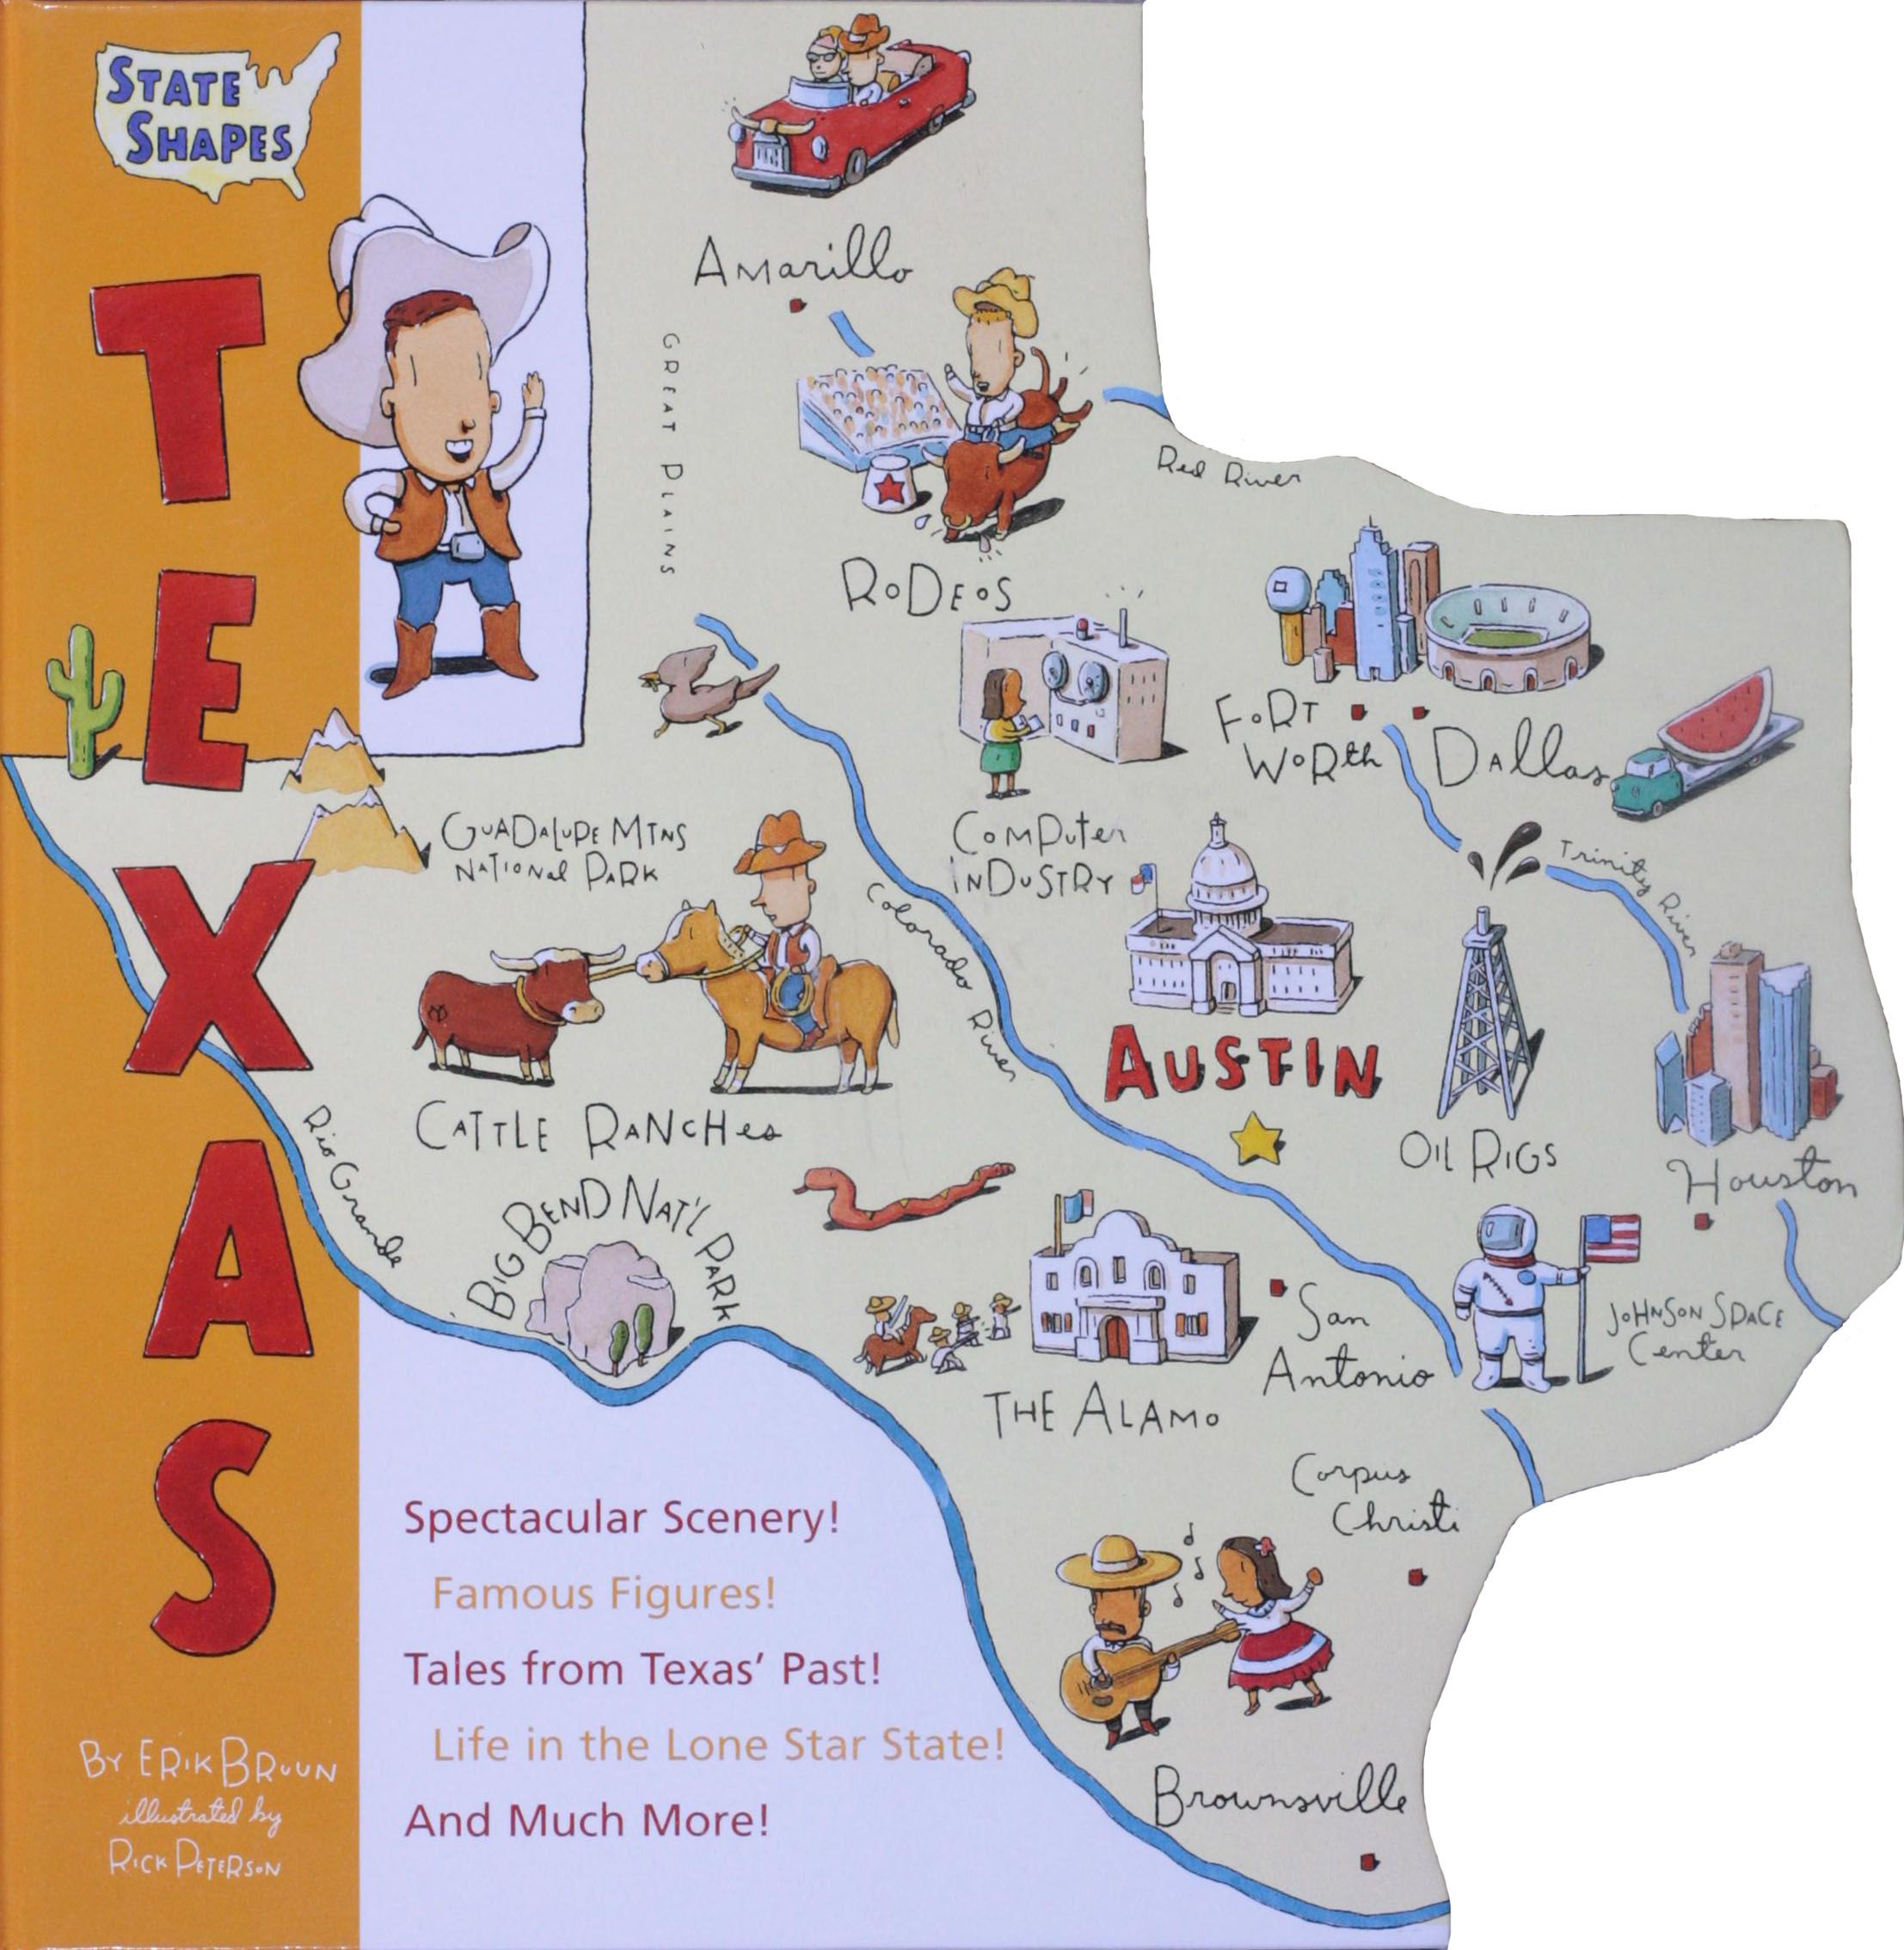 State Shapes Texas Written By Erik Bruun And Illustrated